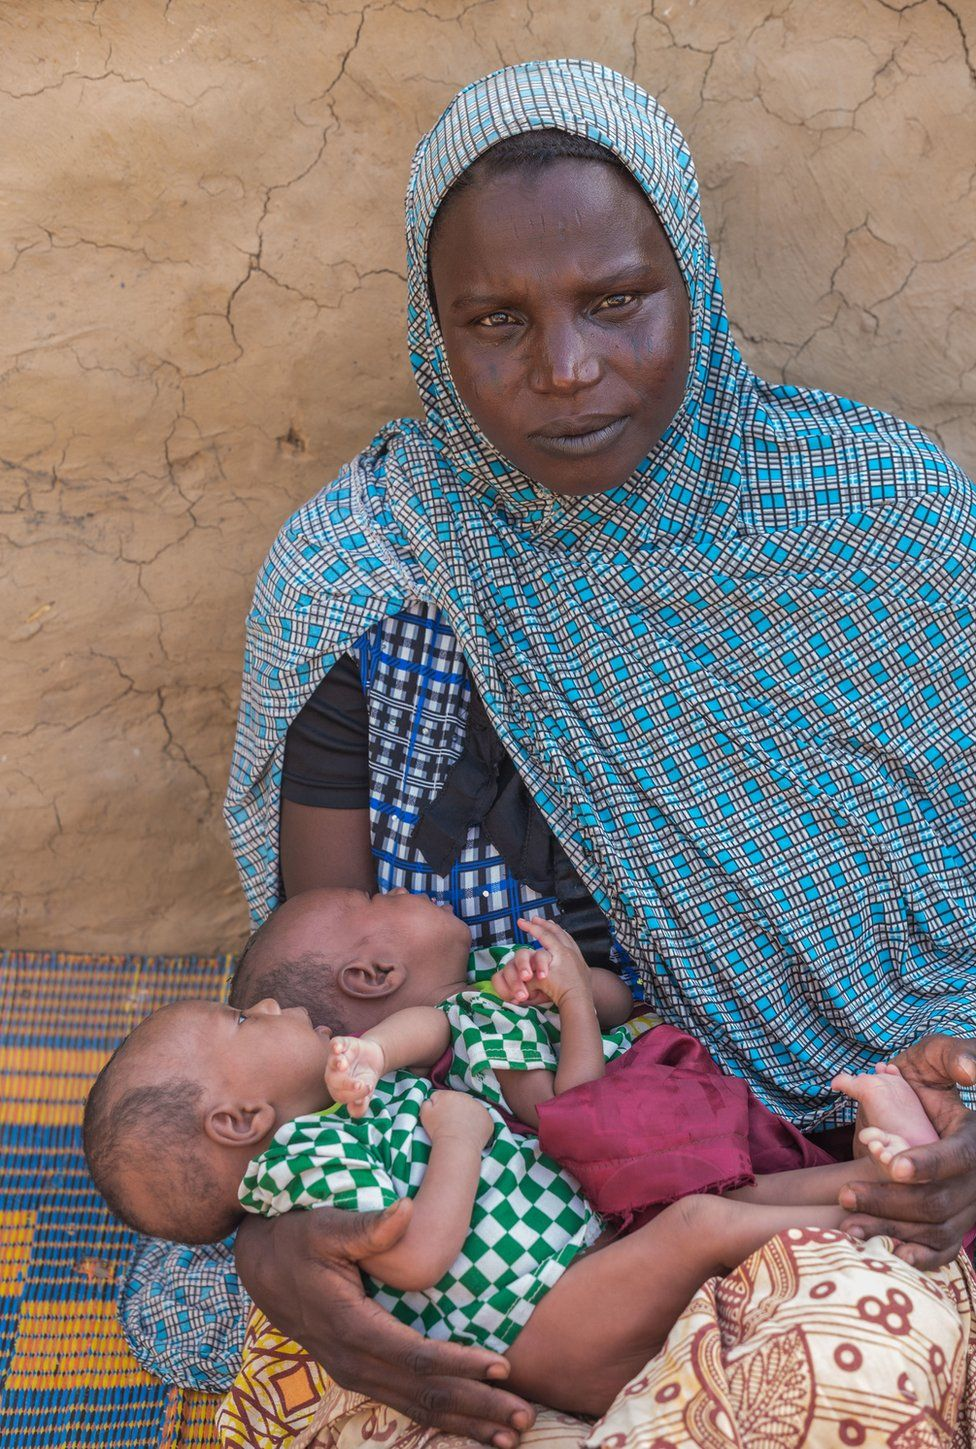 Soumaila Soumana's wife holds two-month-old twins Hassana and Housseina outside their home in Norandé